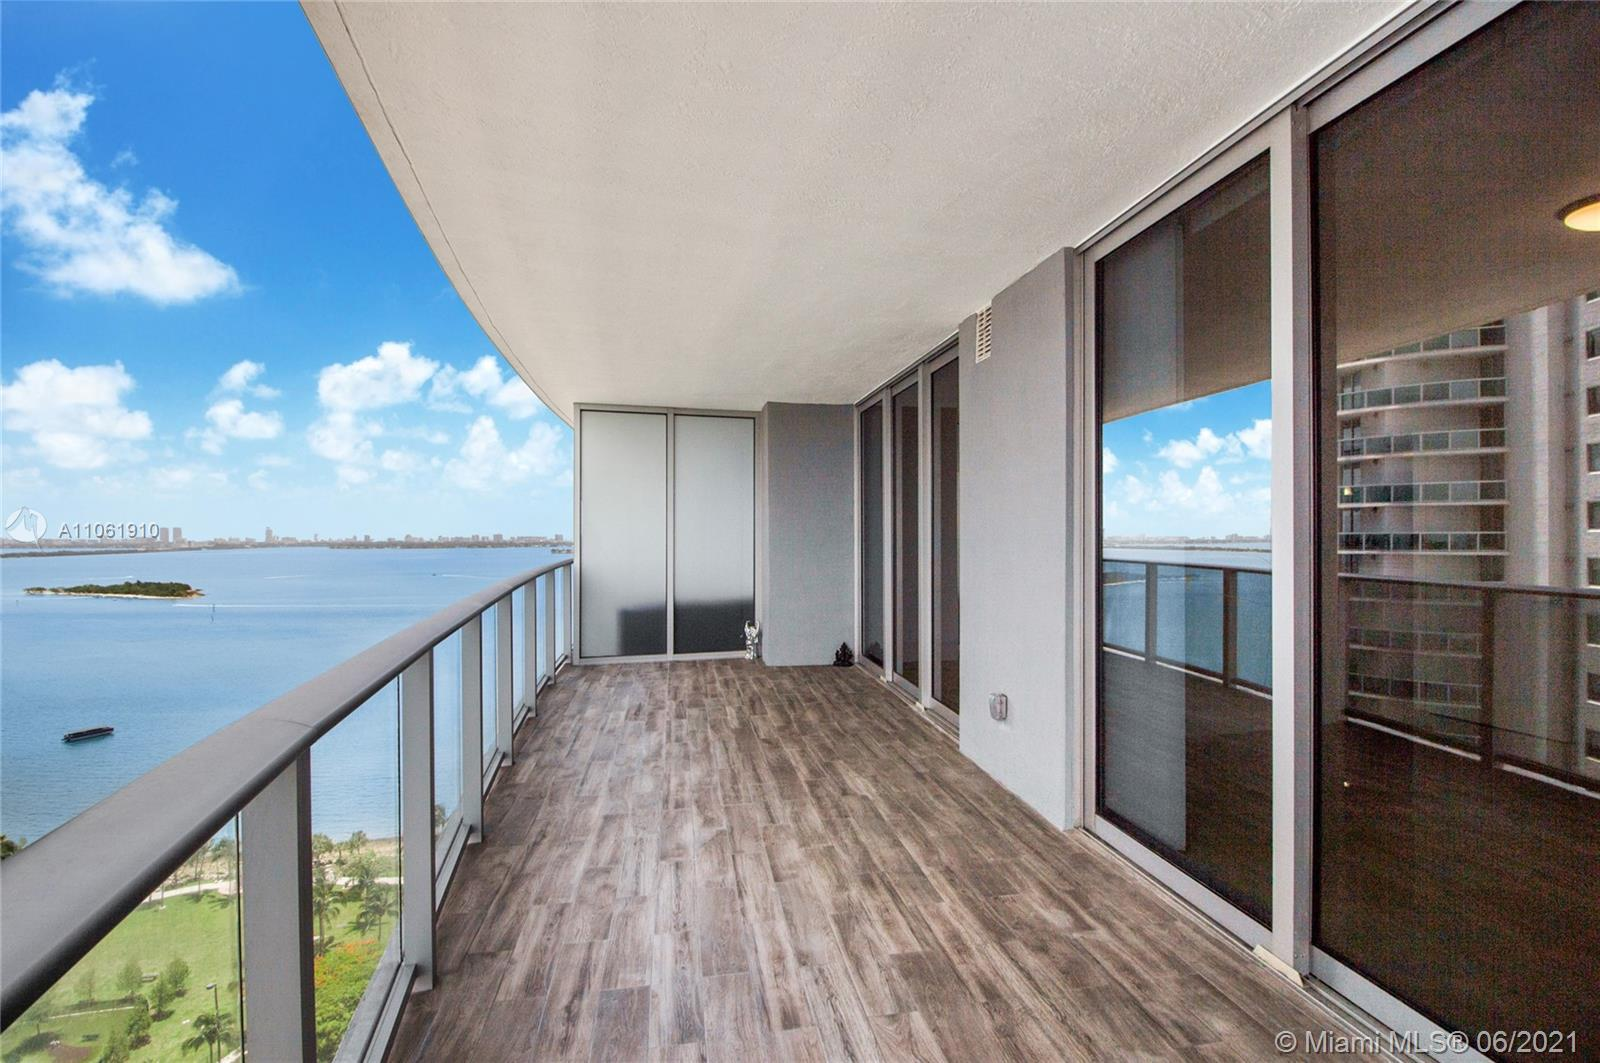 Gorgeous Bay and City views from this new luxury residence at Aria on the Bay in Edgewater. Spacious